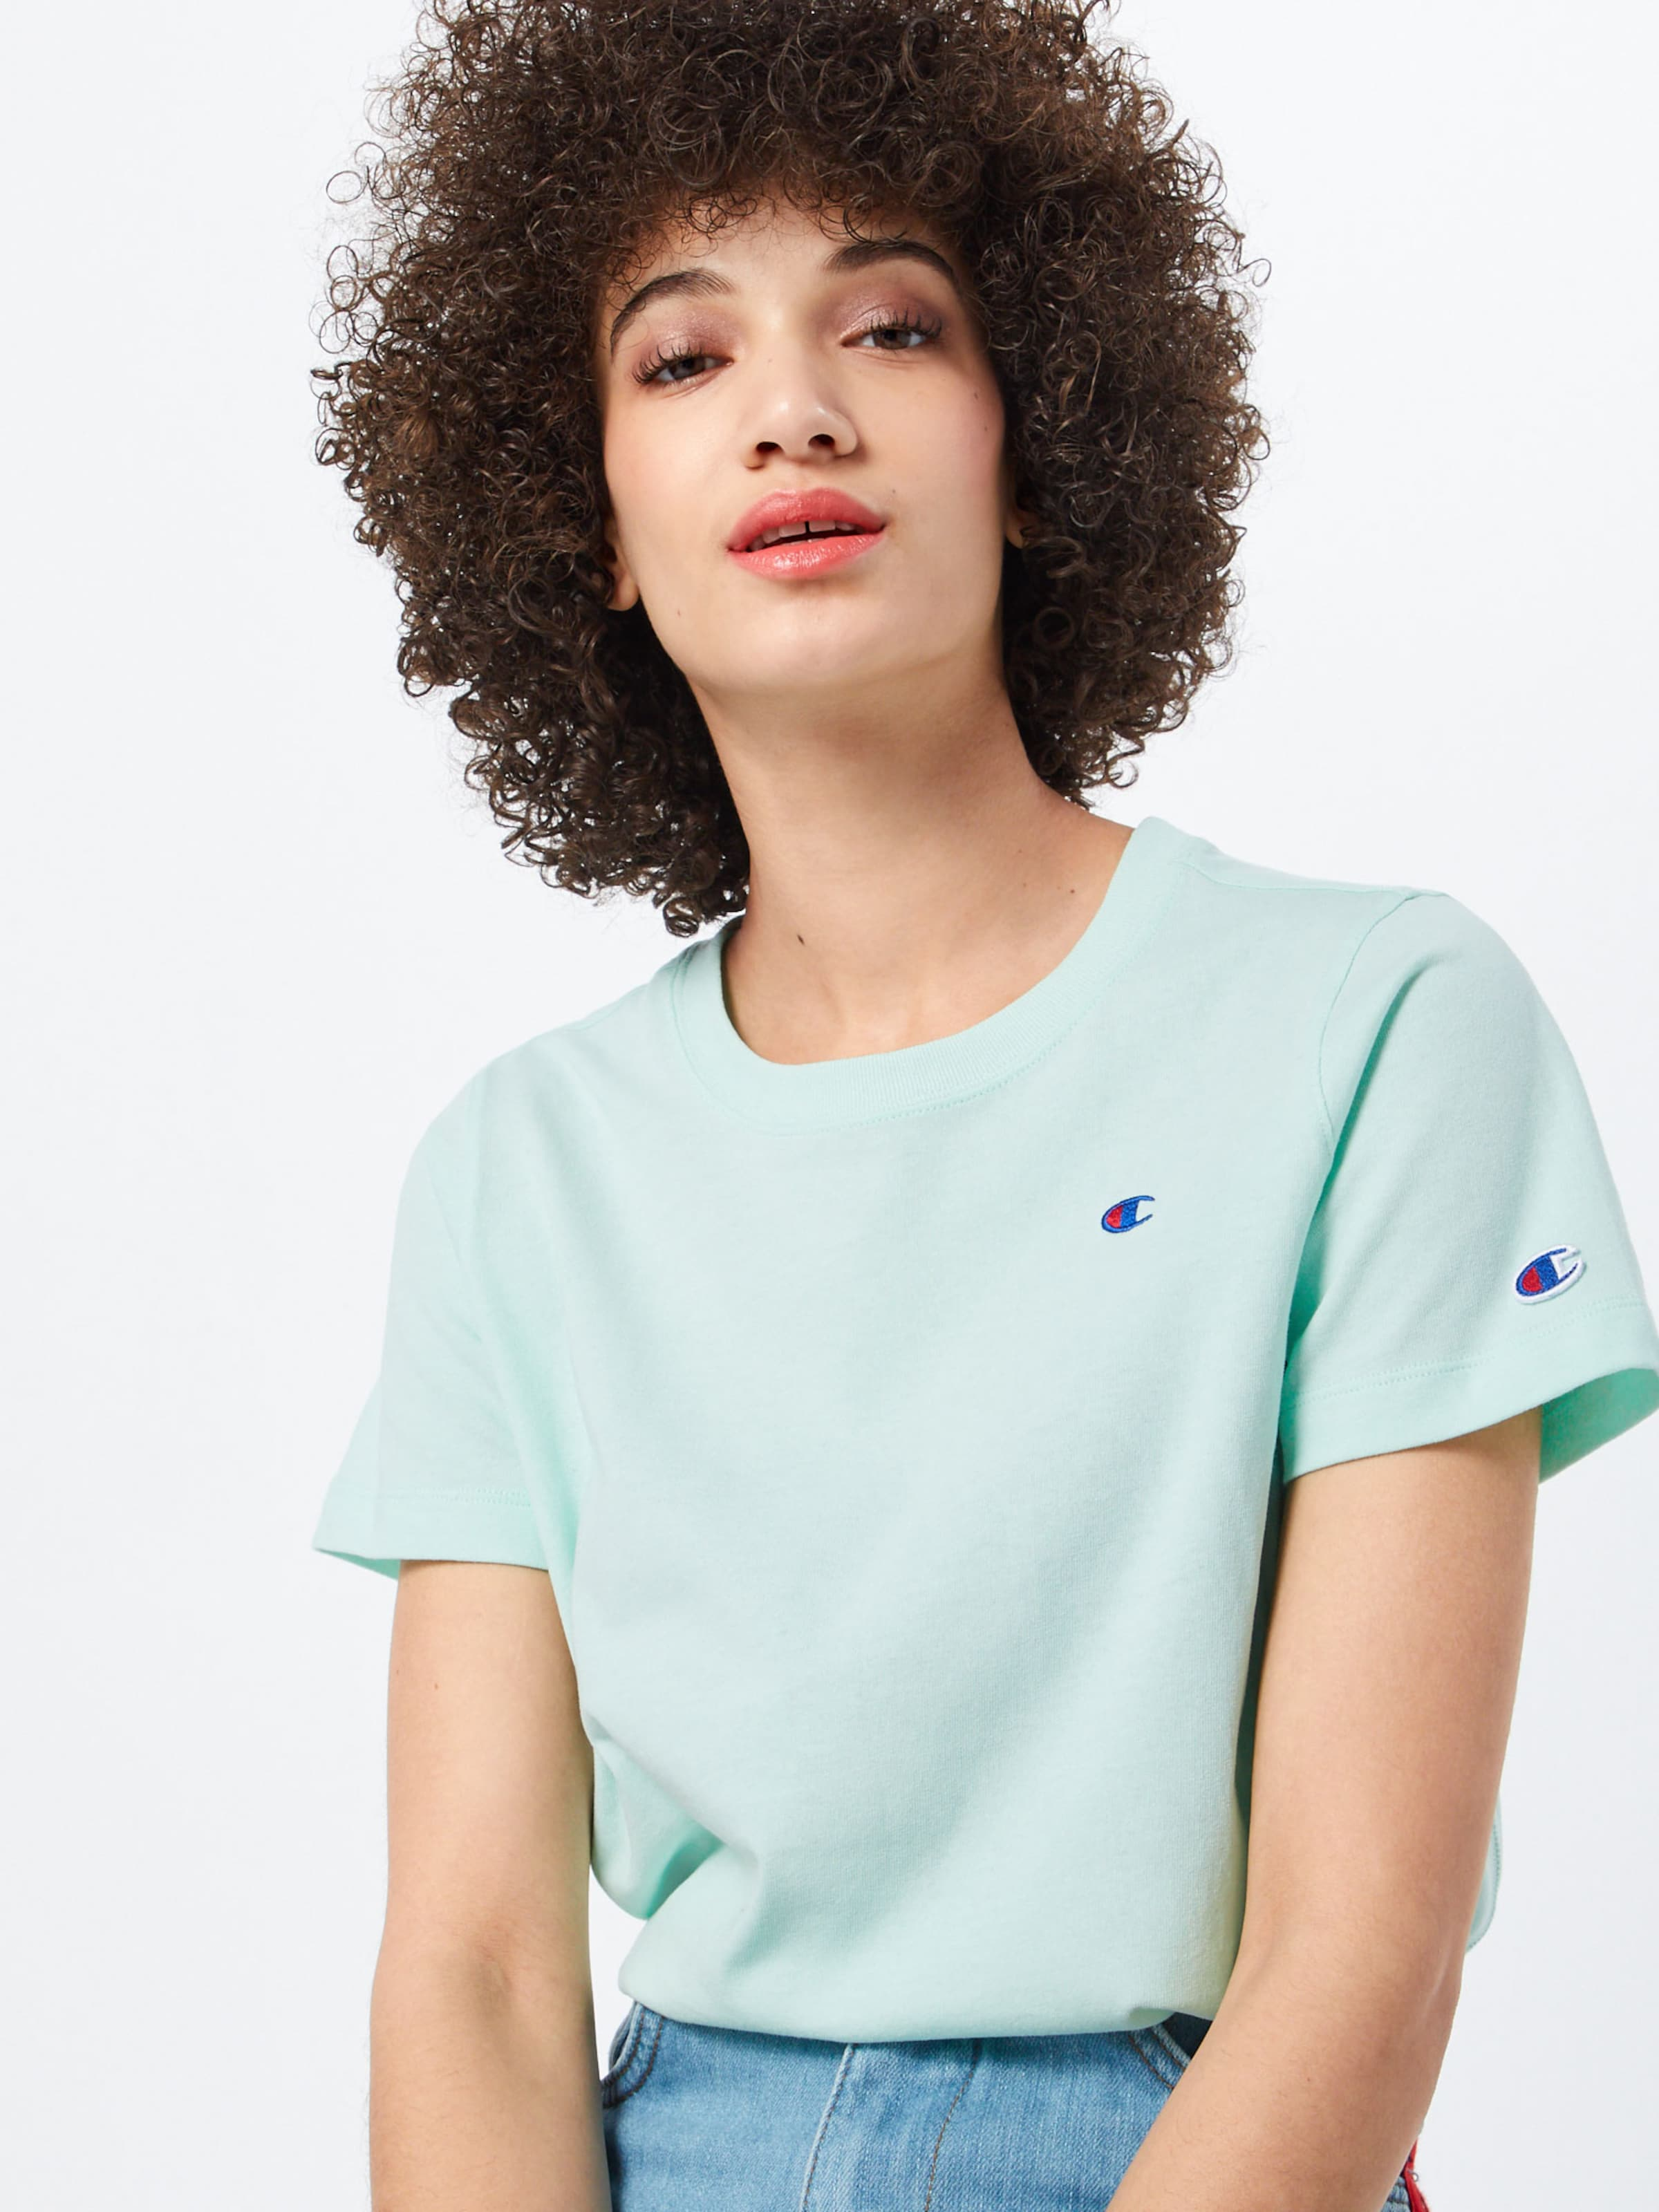 Reverse Mint Champion In Weave Shirt vI6gybfY7